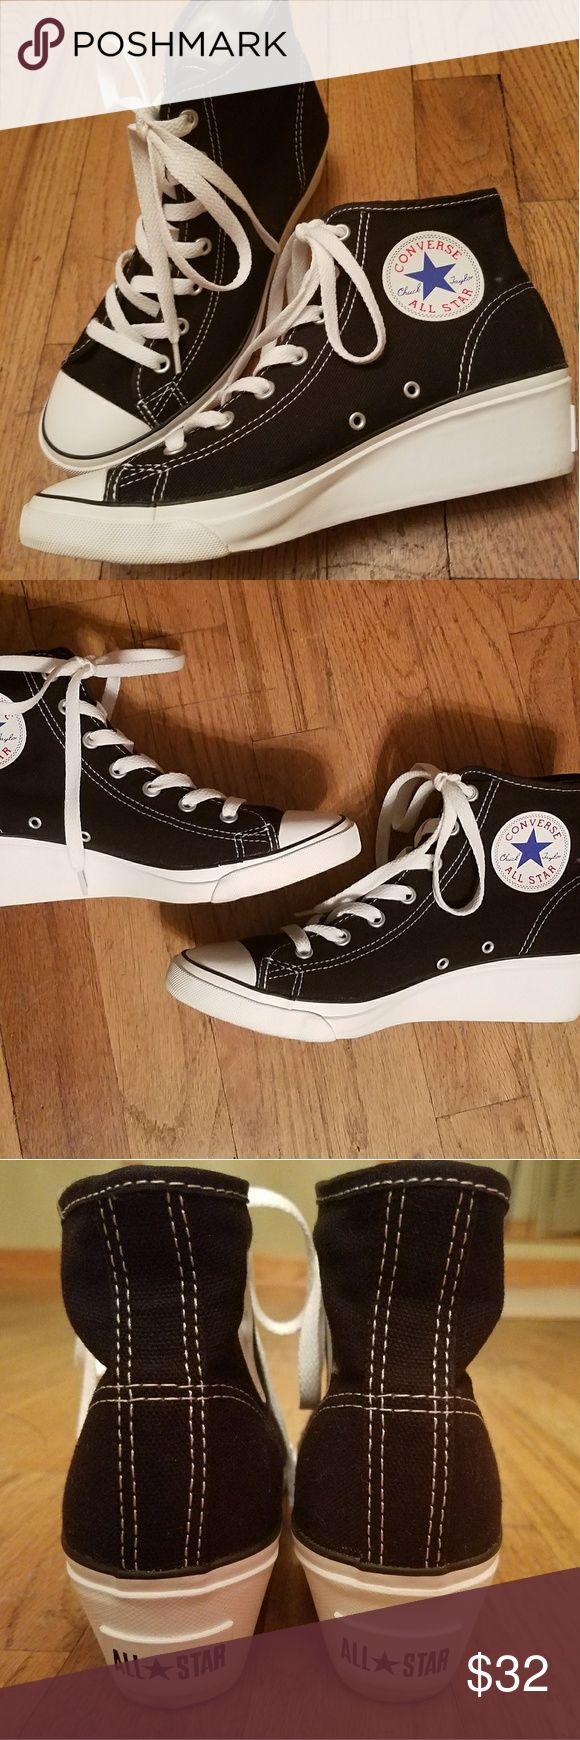 Converse Wedge Sneakers Gently worn Converse wedges. In great condition! Converse Shoes Sneakers